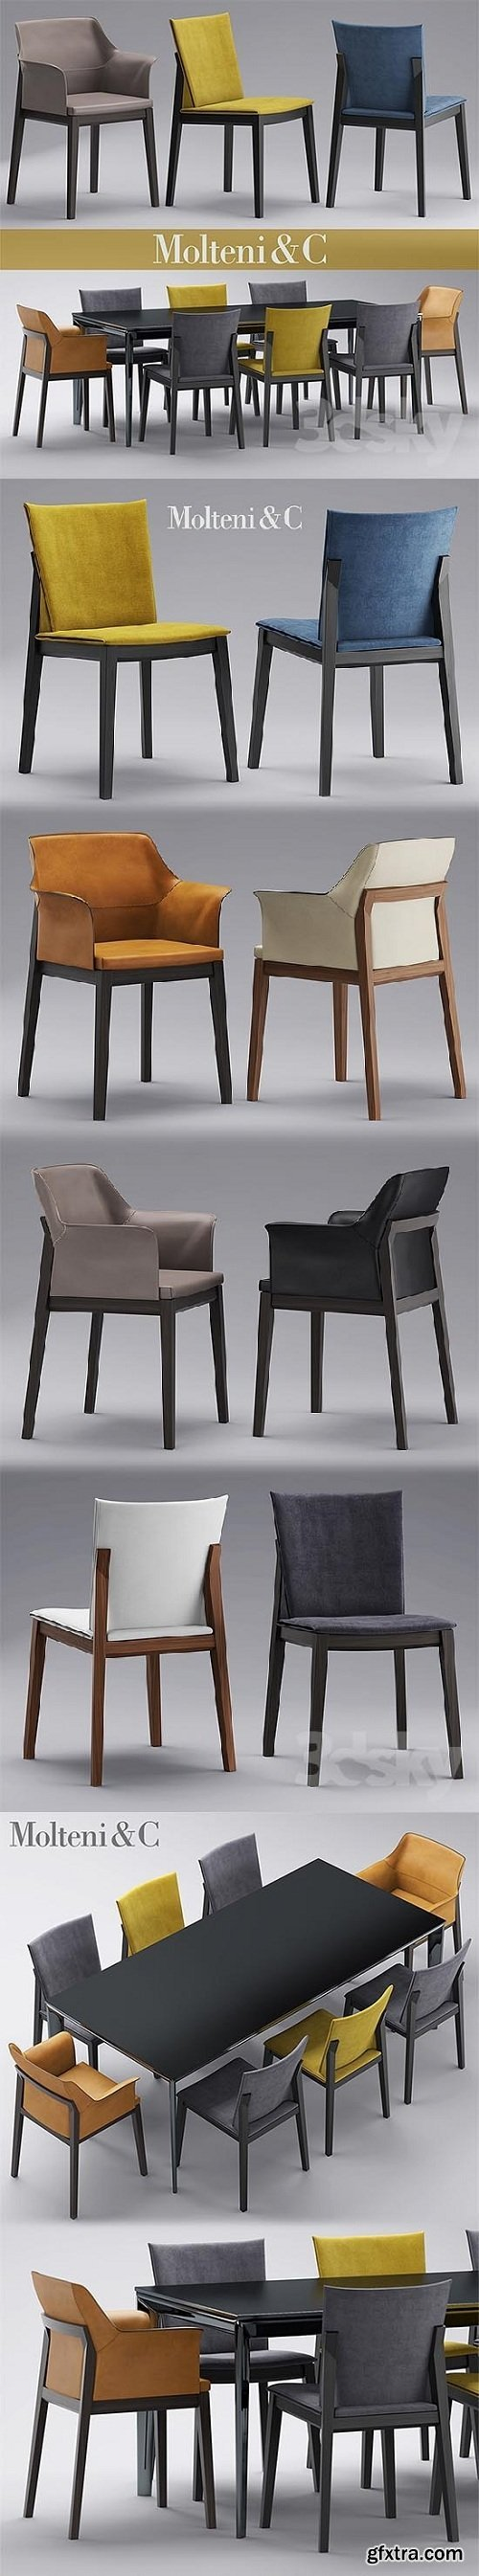 Table and chairs molteni CHAIRS BREVA, TIVAN